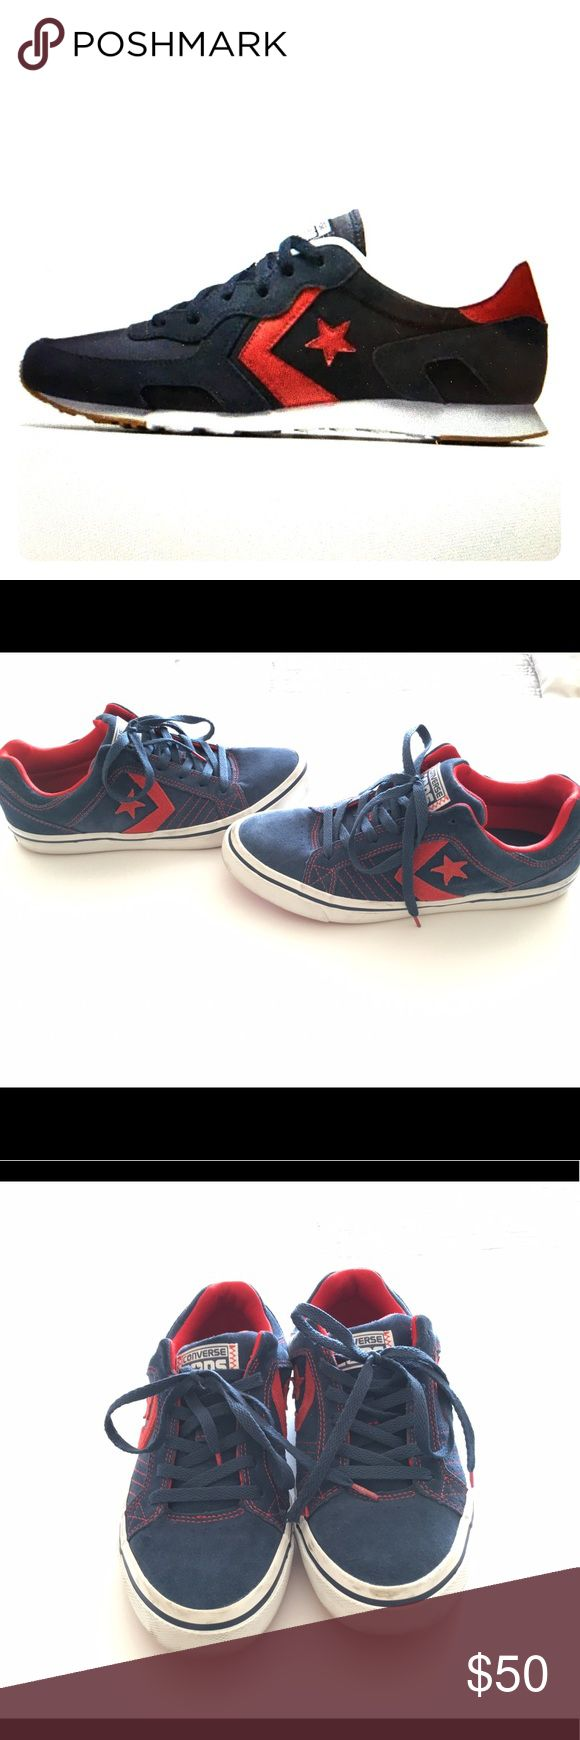 Converse thunderbolt from Nike men shoes blue red A retro running sneaker  re designed with advanced